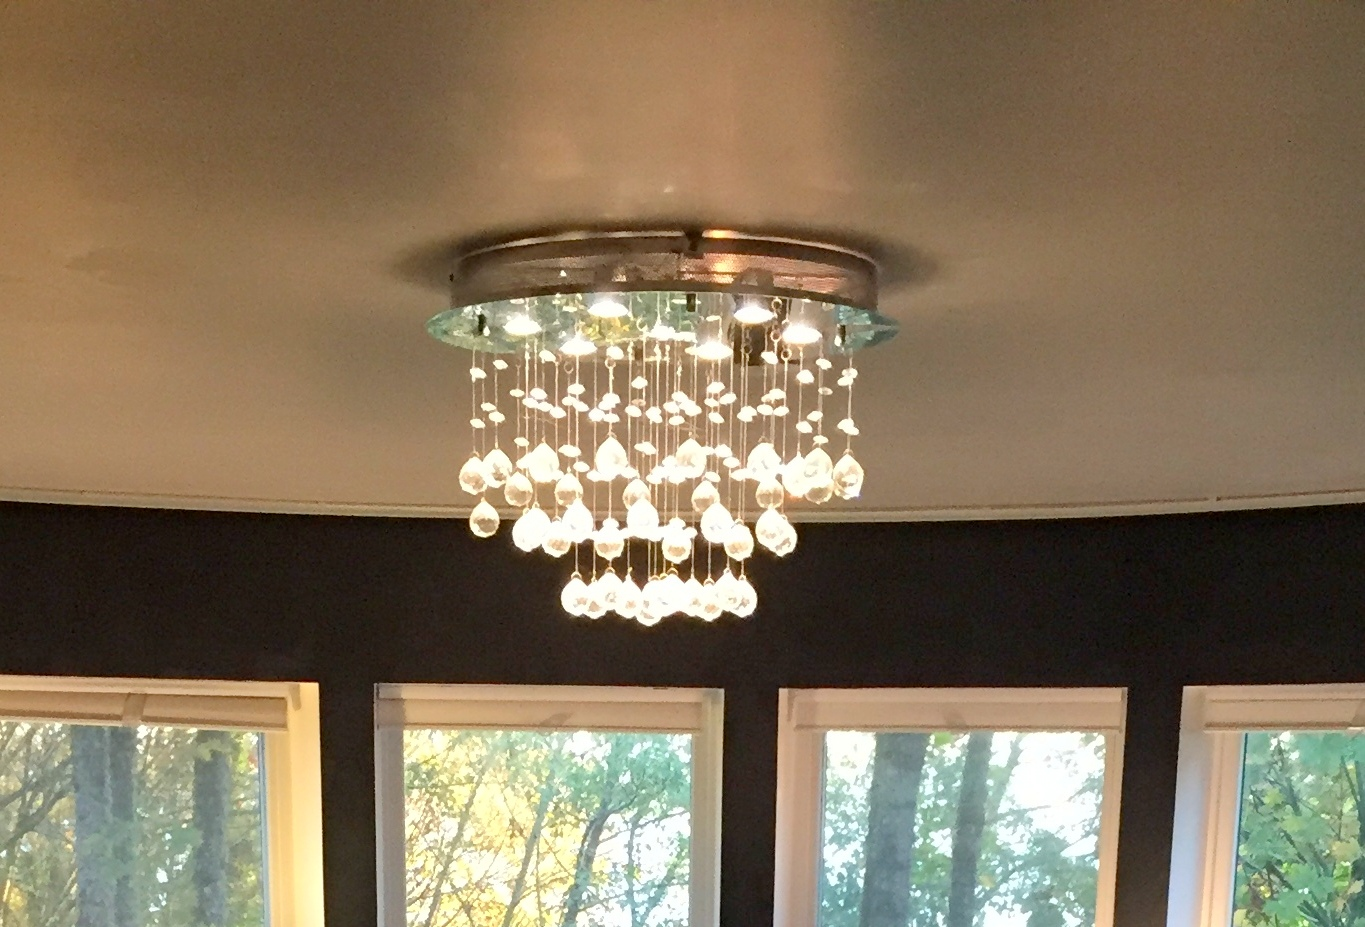 Wishing For Master Closet Chandelier Building Style